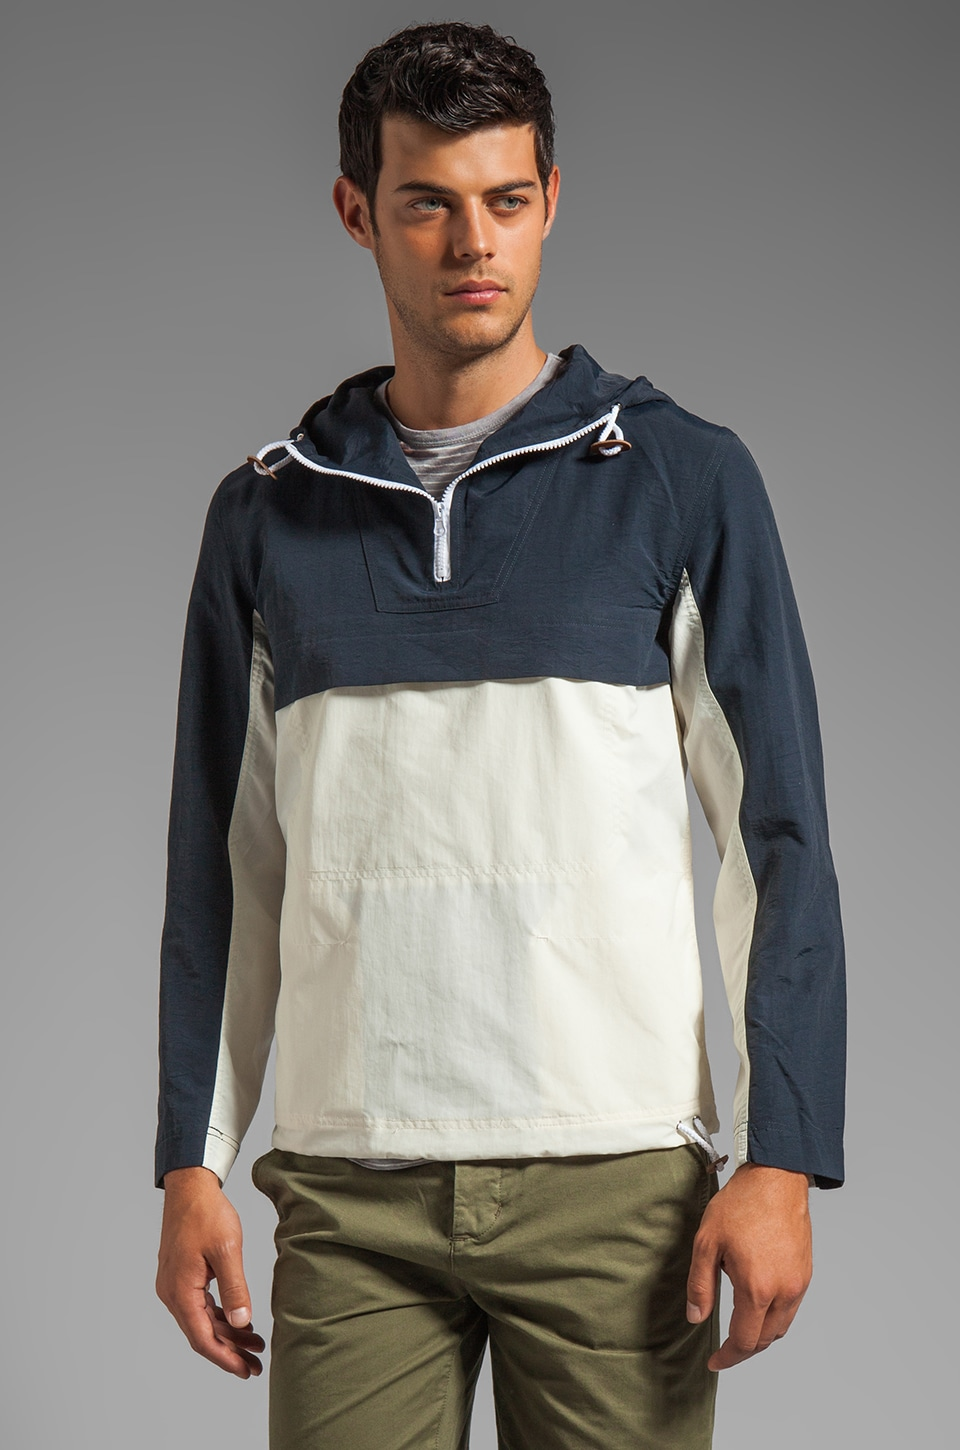 Z.A.K. Pullover Windbreaker in Navy/White